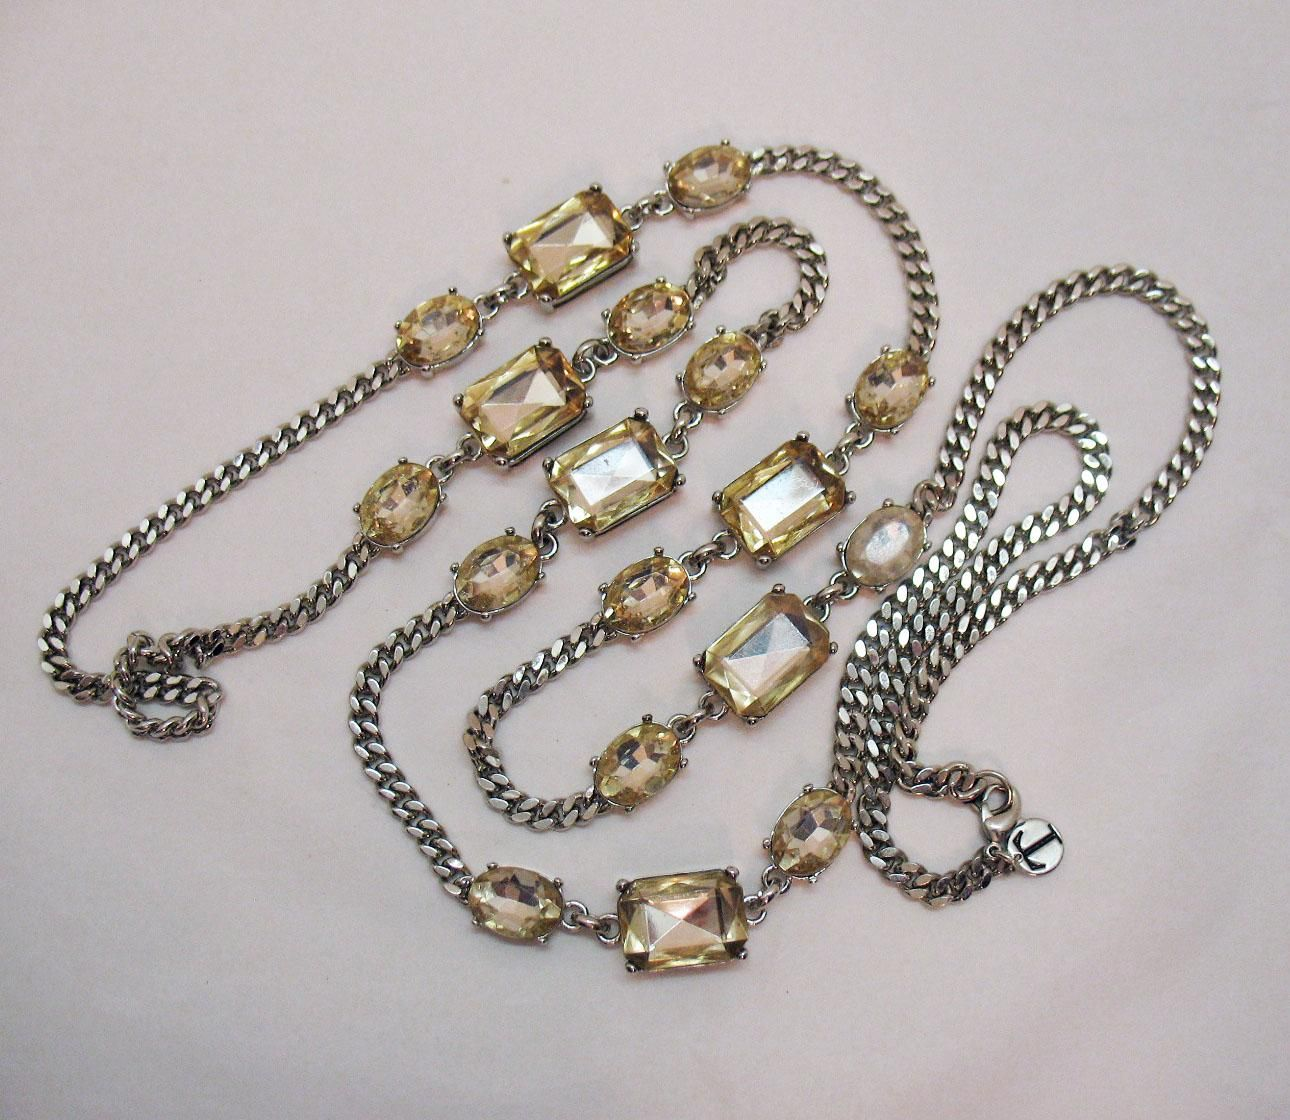 Signed Talbots Massive Champagne Rhinestone 46 Inches Long Necklace